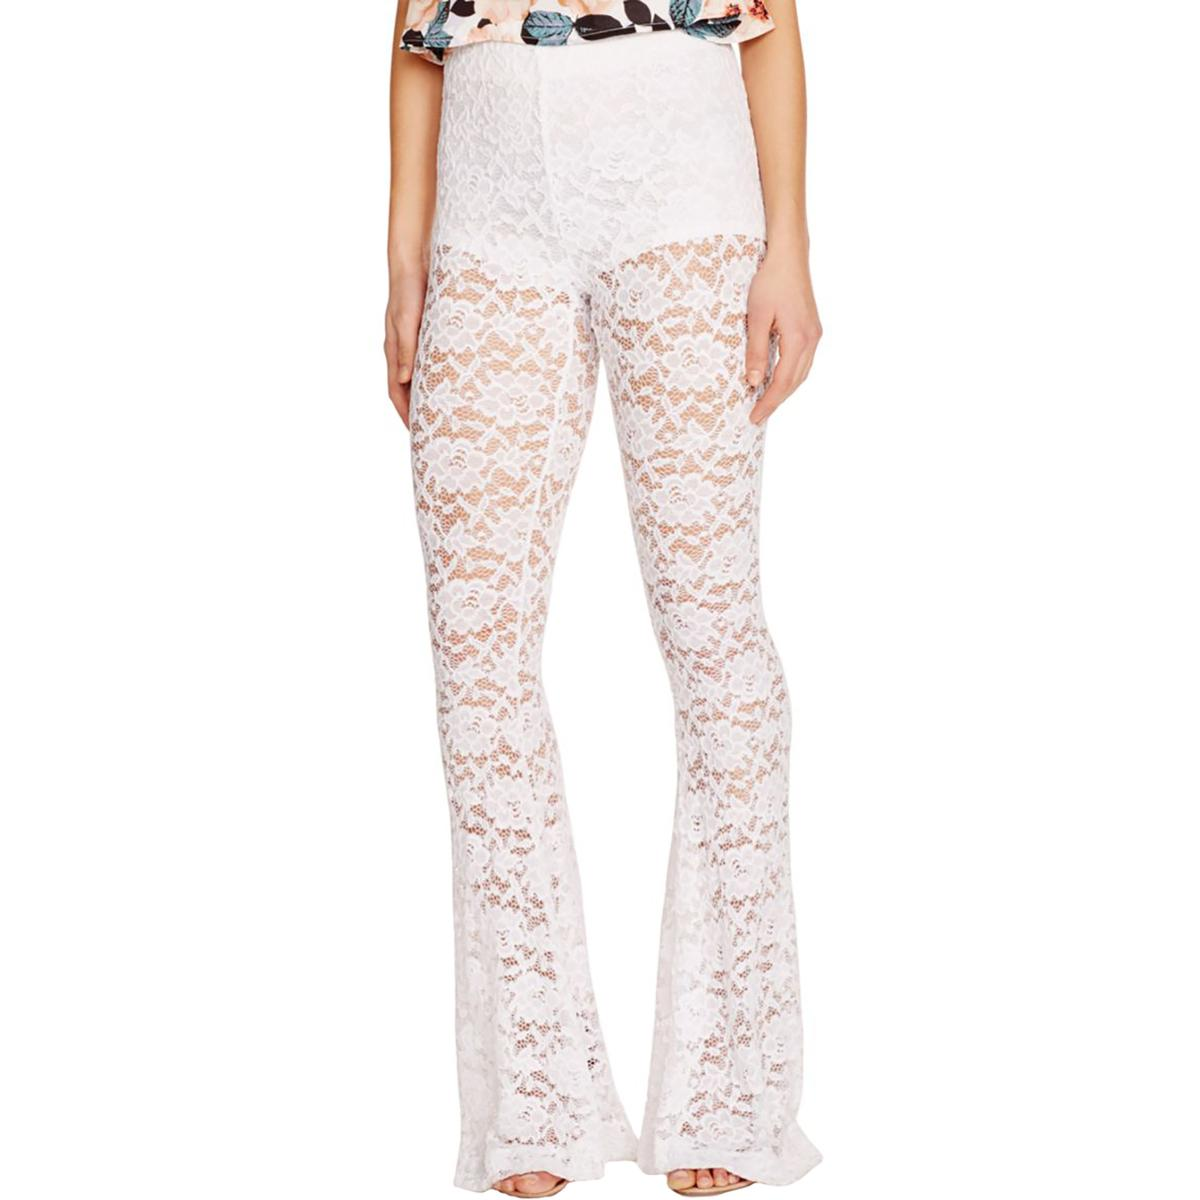 Show Me Your Mumu Womens Lace Bell Bottom Casual Pants